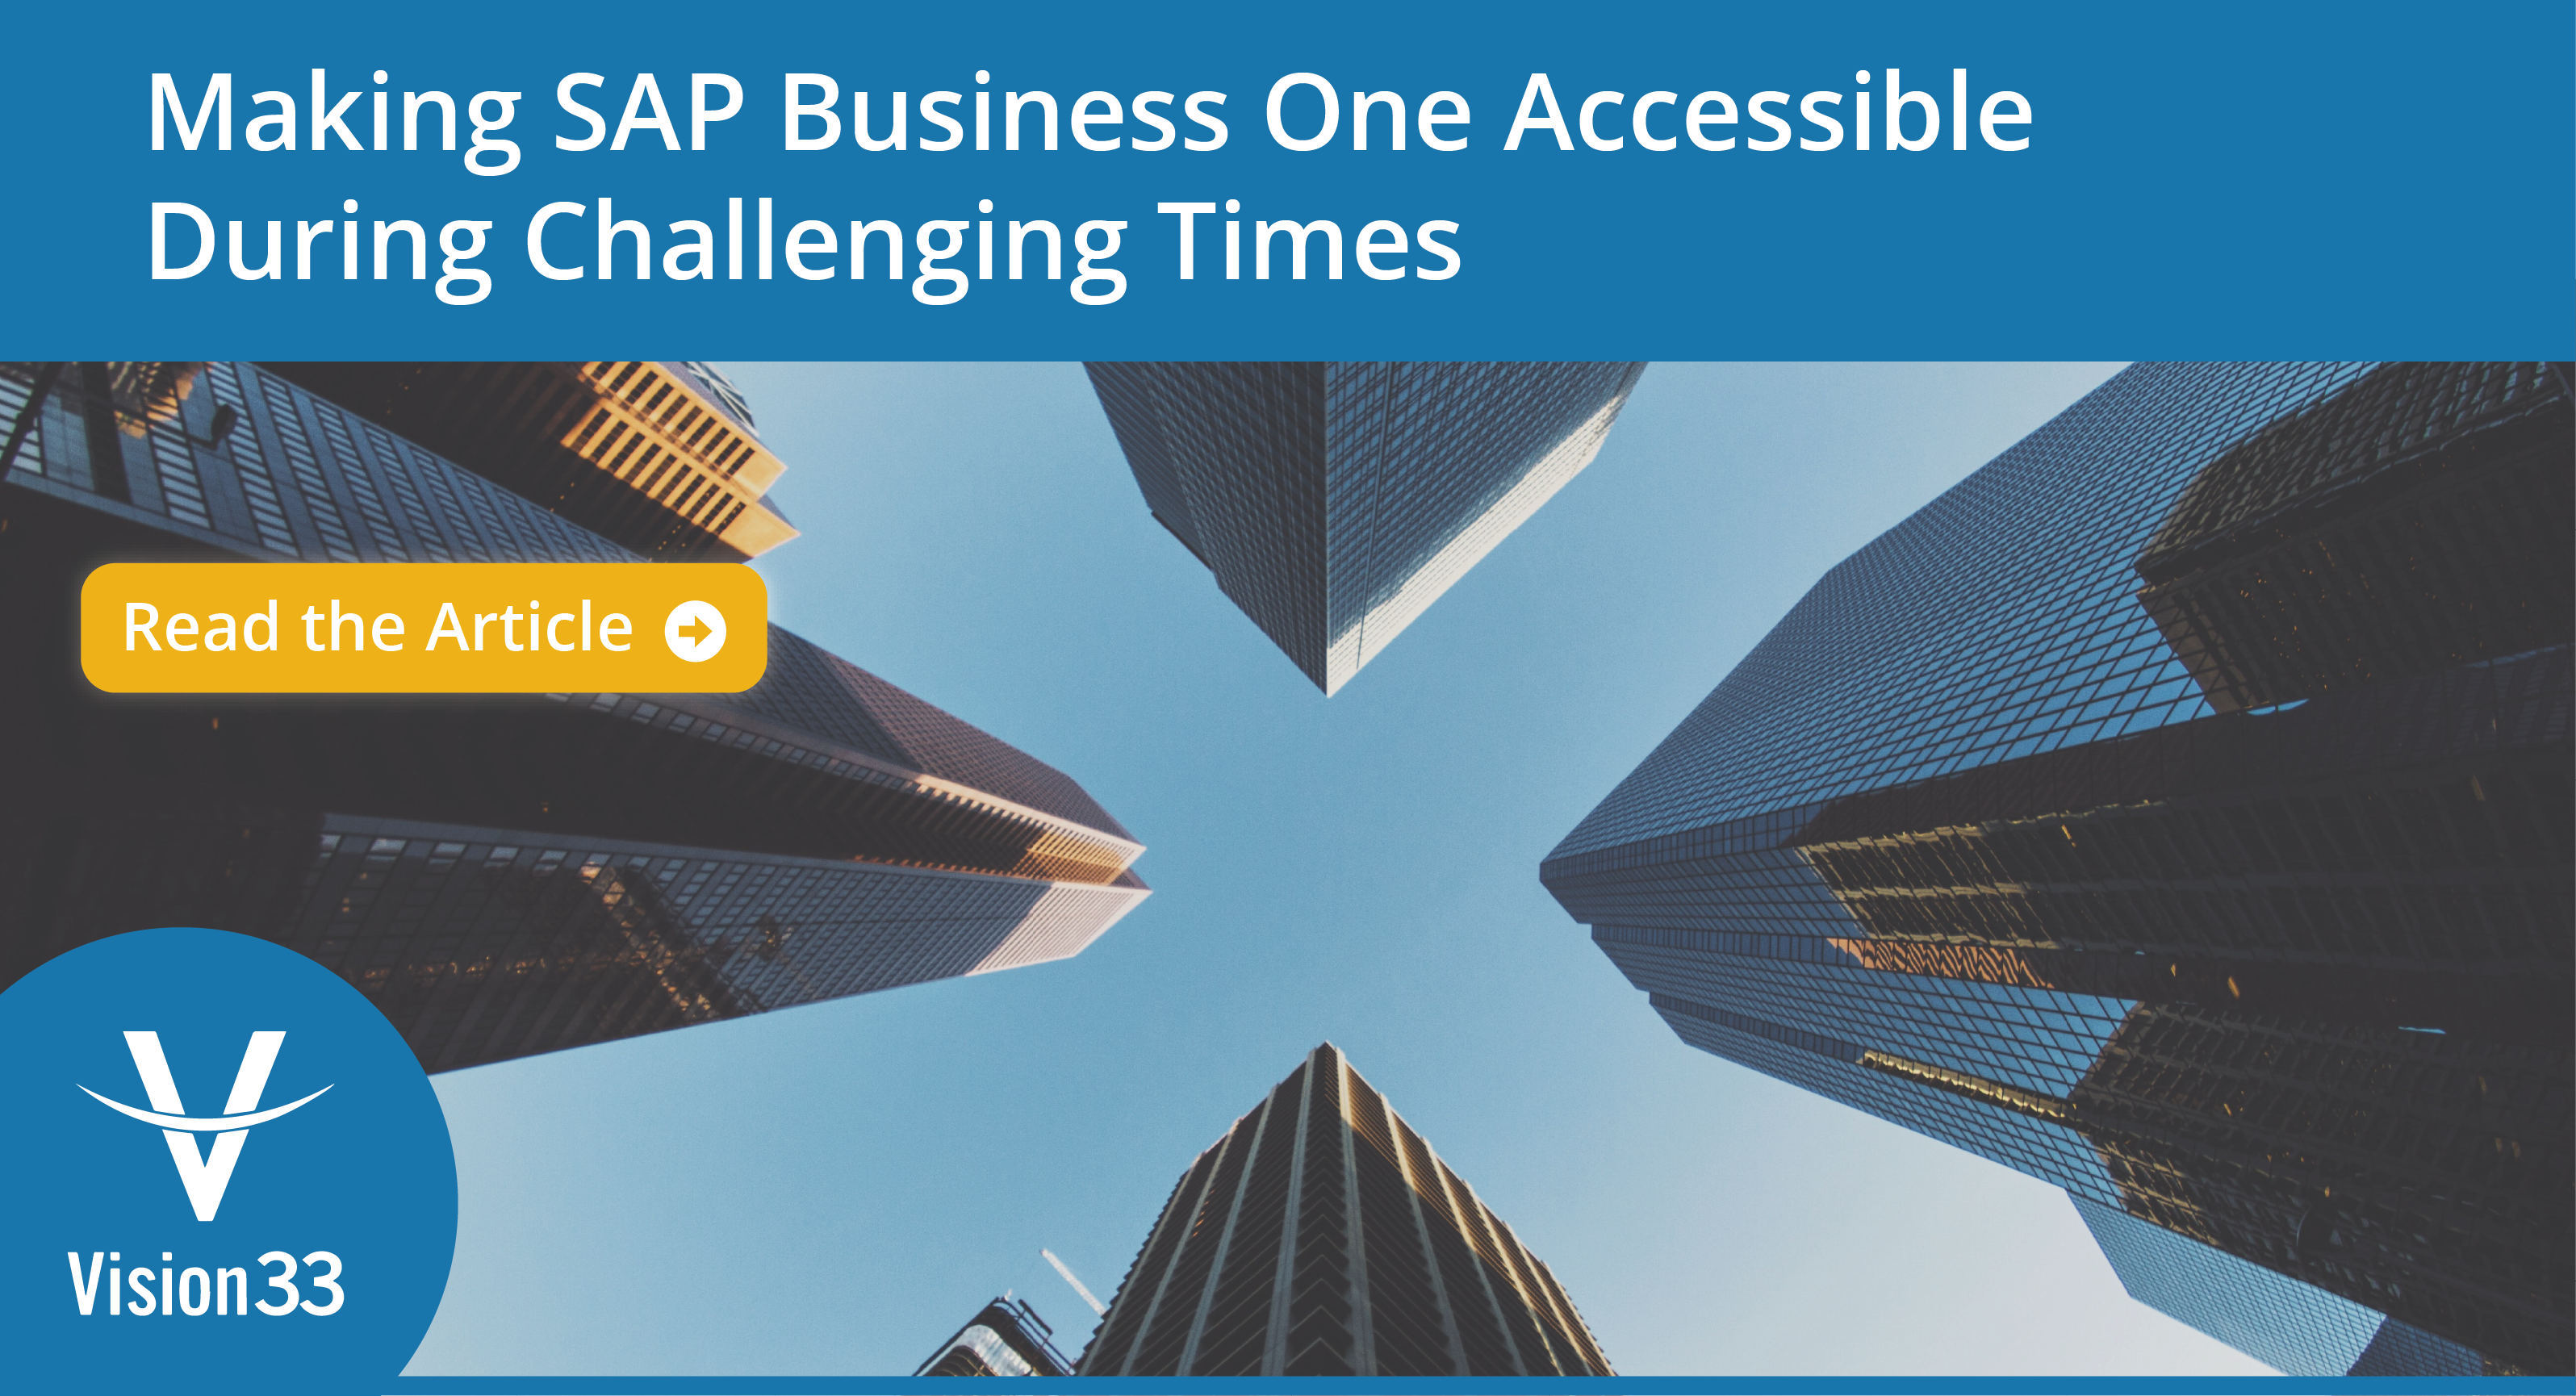 Making SAP Business One Accessible During Challenging Times